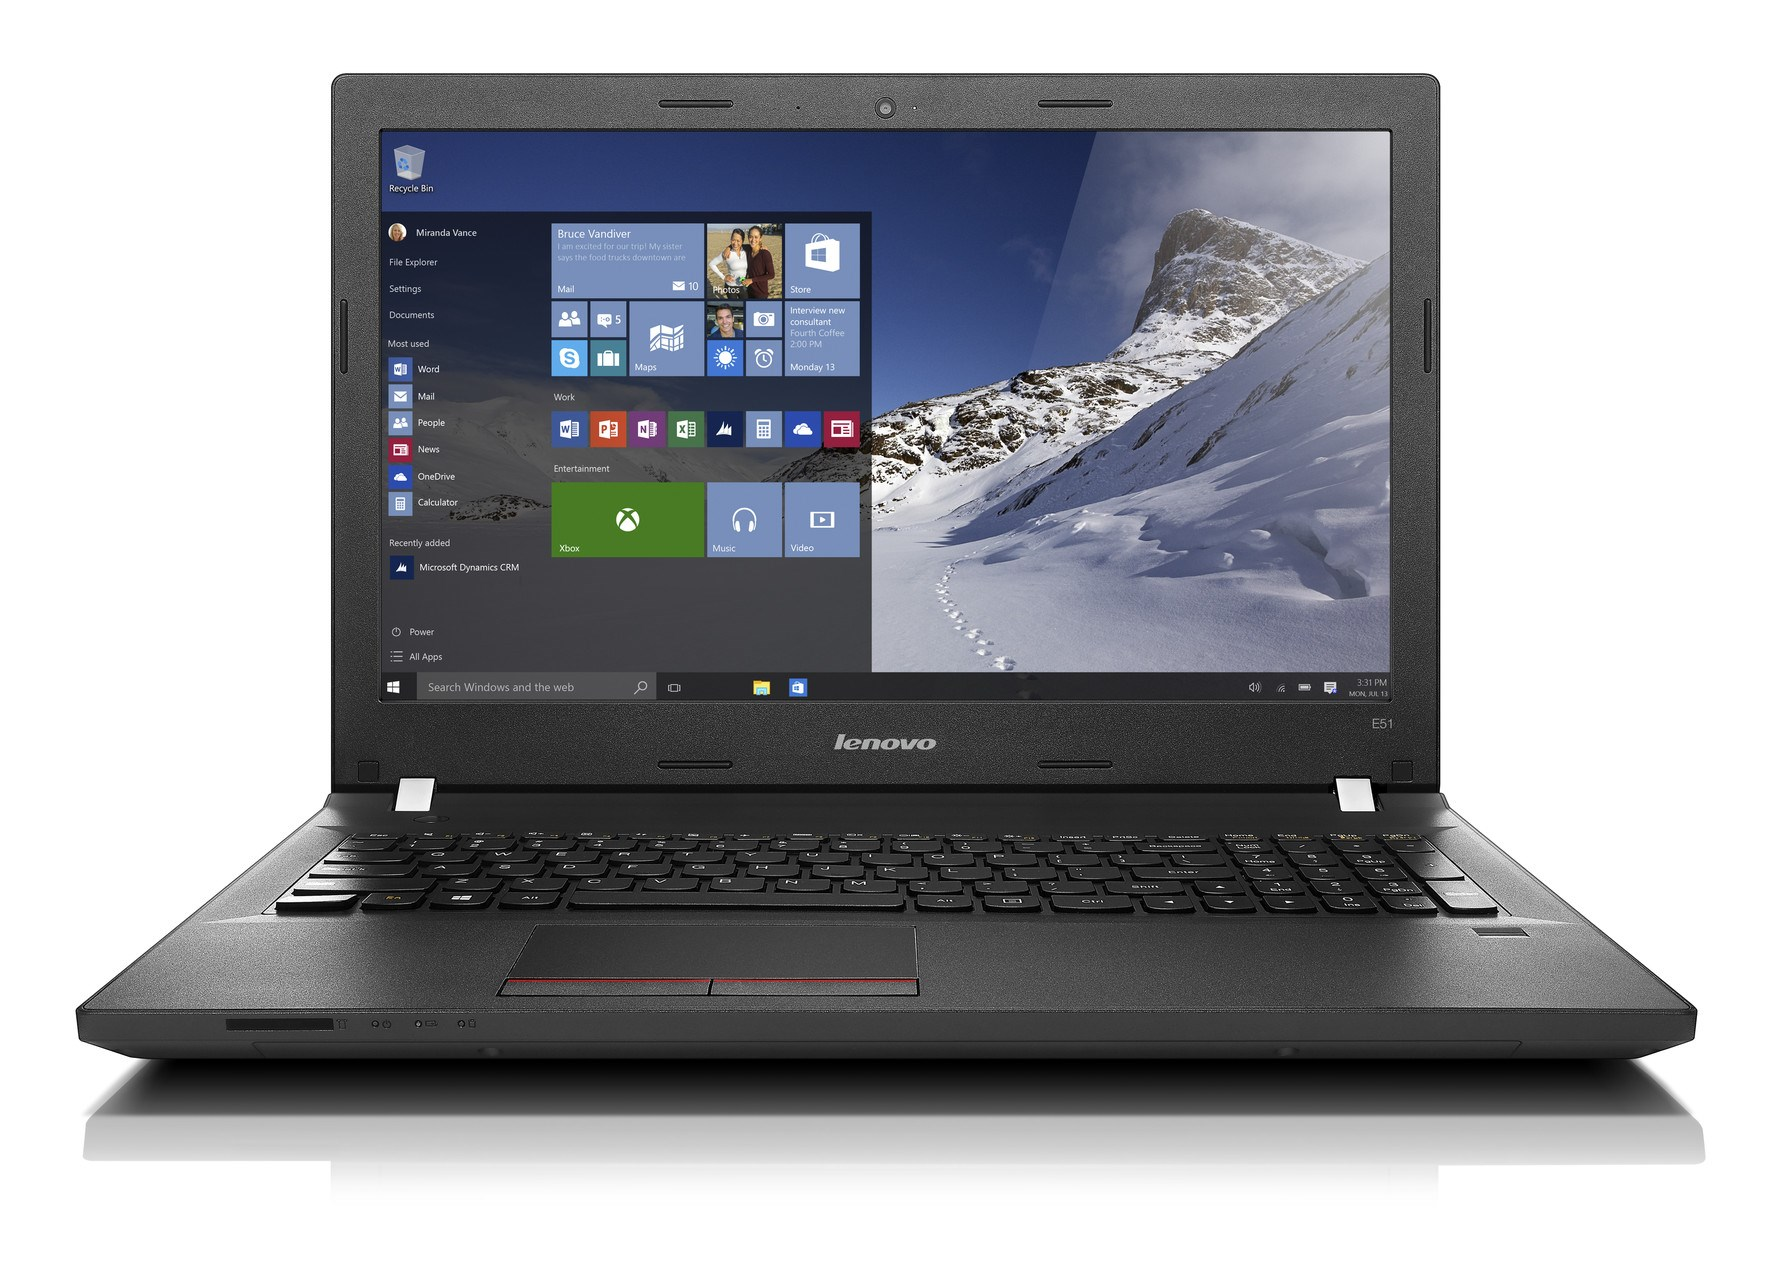 "LENOVO E51-80 černý 15.6"" 1920x1080mat,i5-6200U@2.3GHz, 4GB, 8+1TB54,HD520,DVD,VGA,HDMI,3xUSB,4c,W10P + 3r on-site"